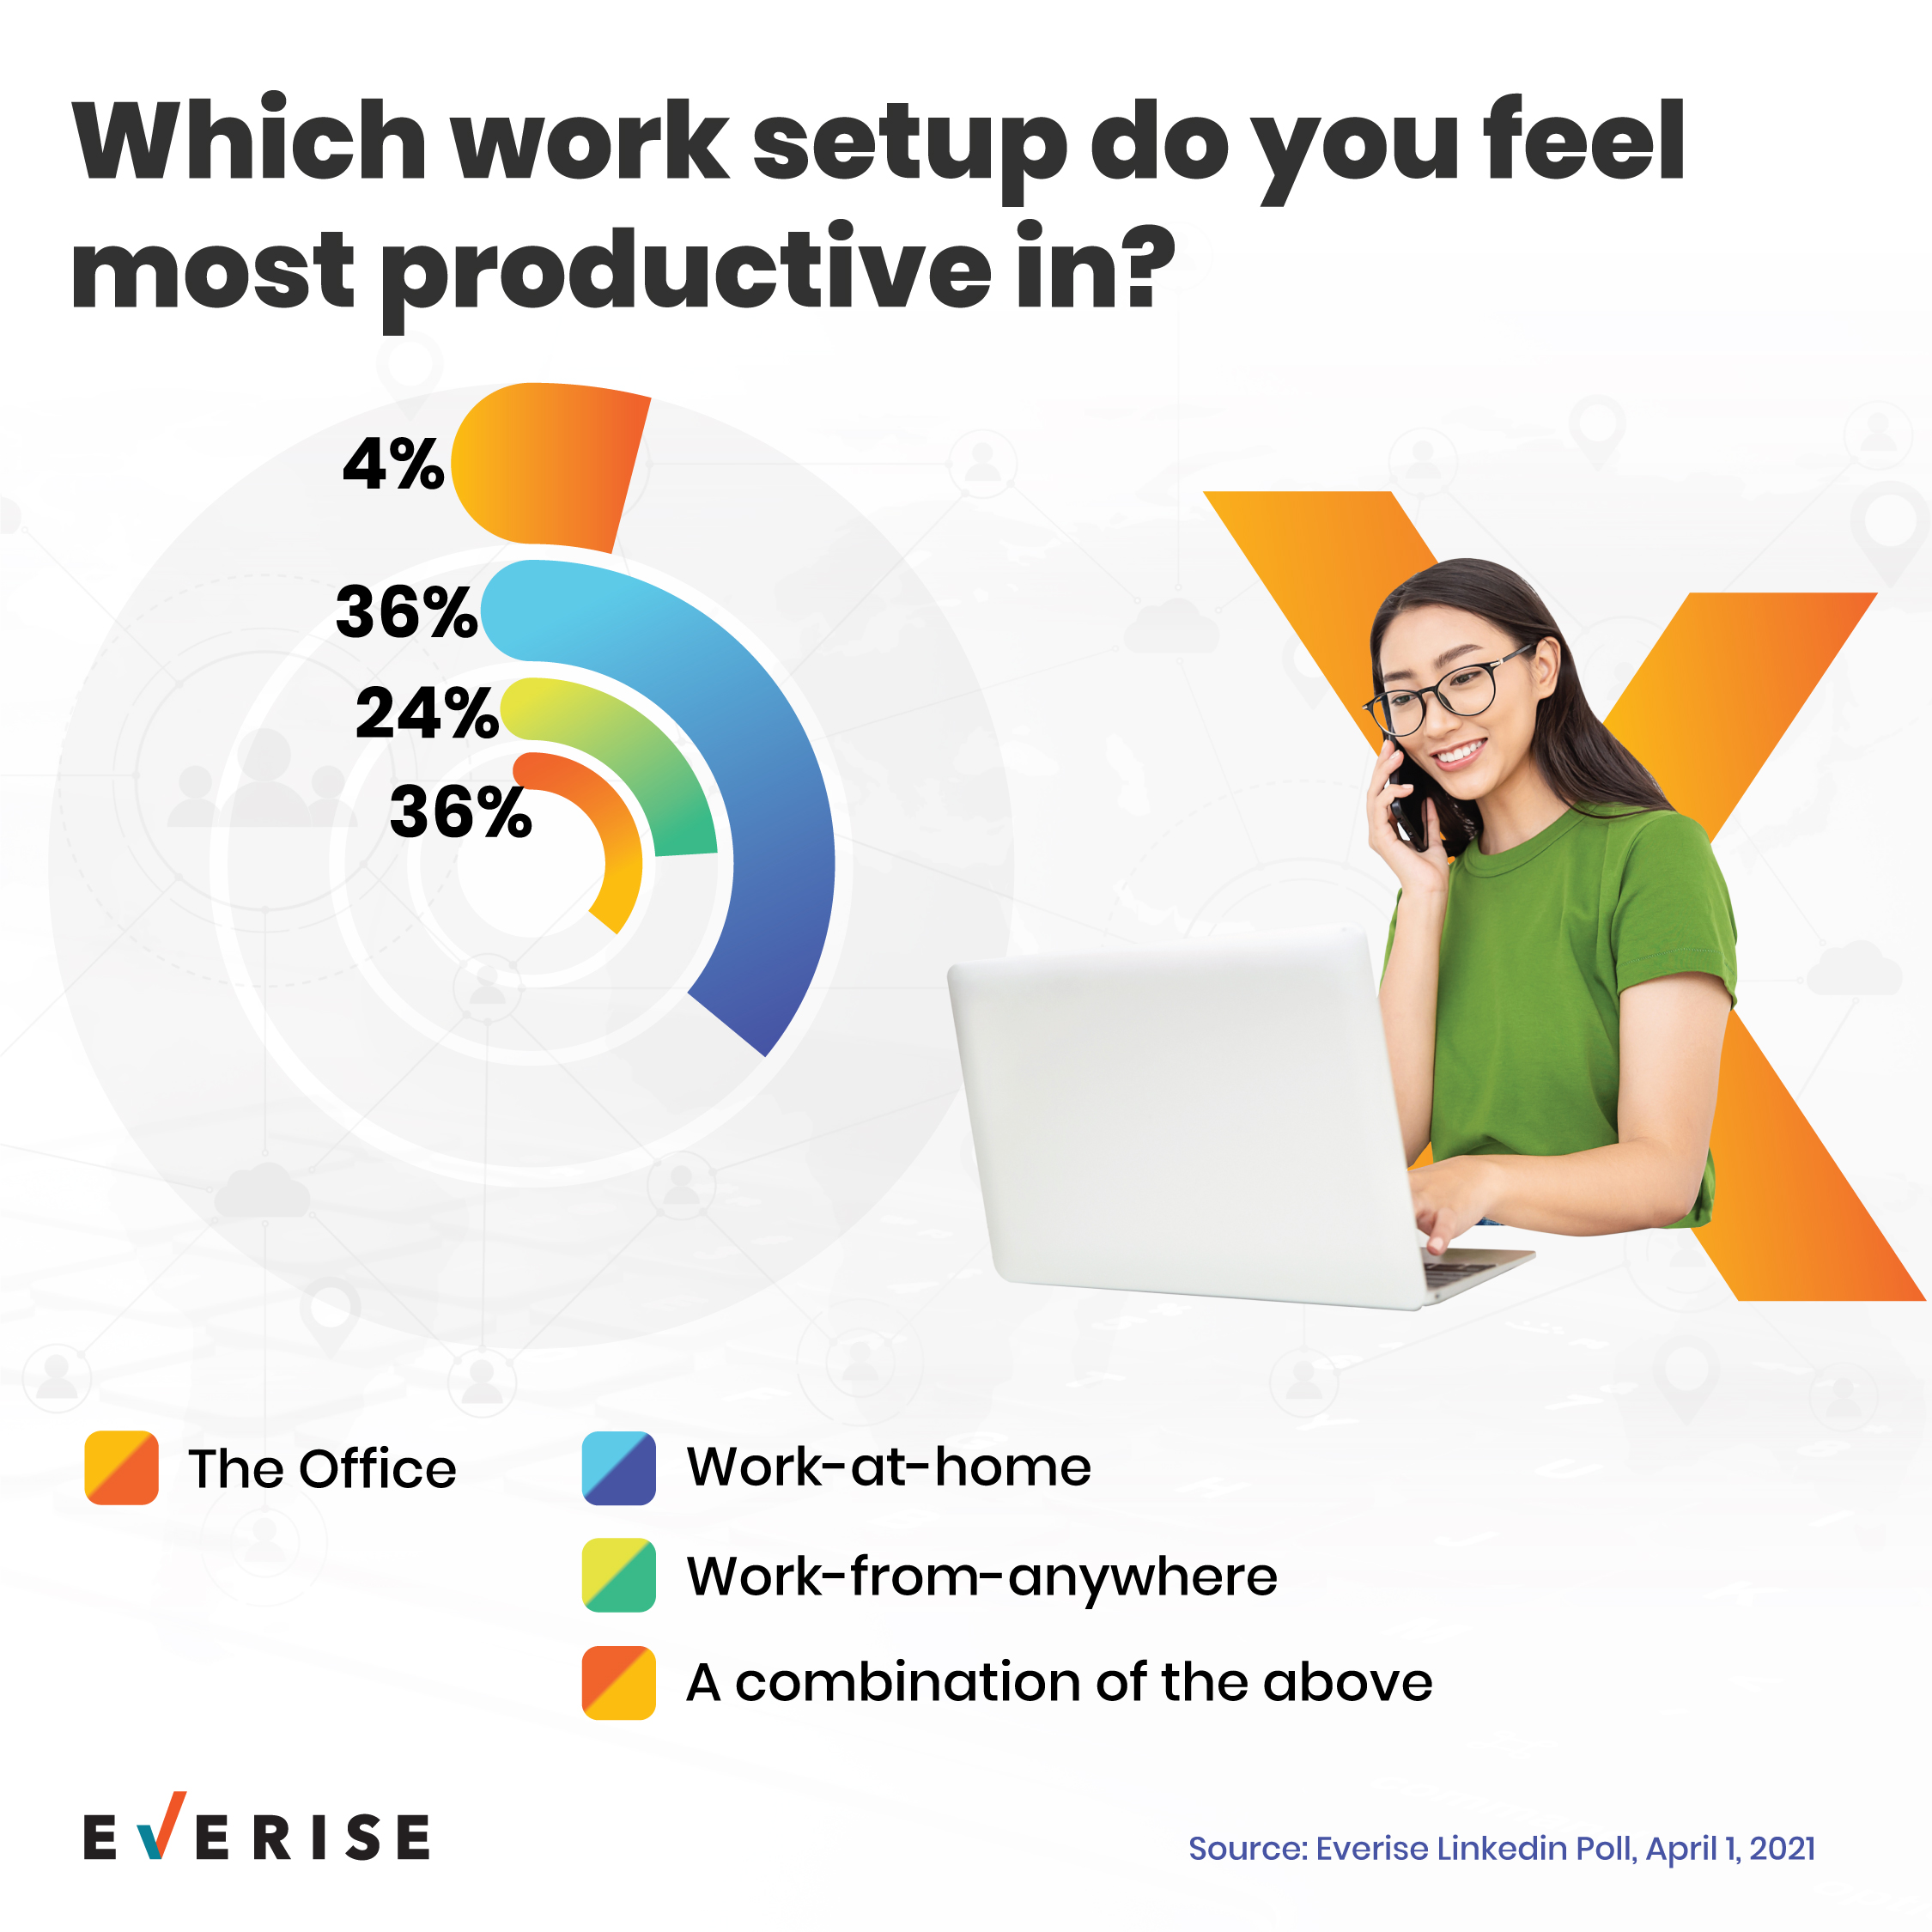 New Normal Work Setting Preferences